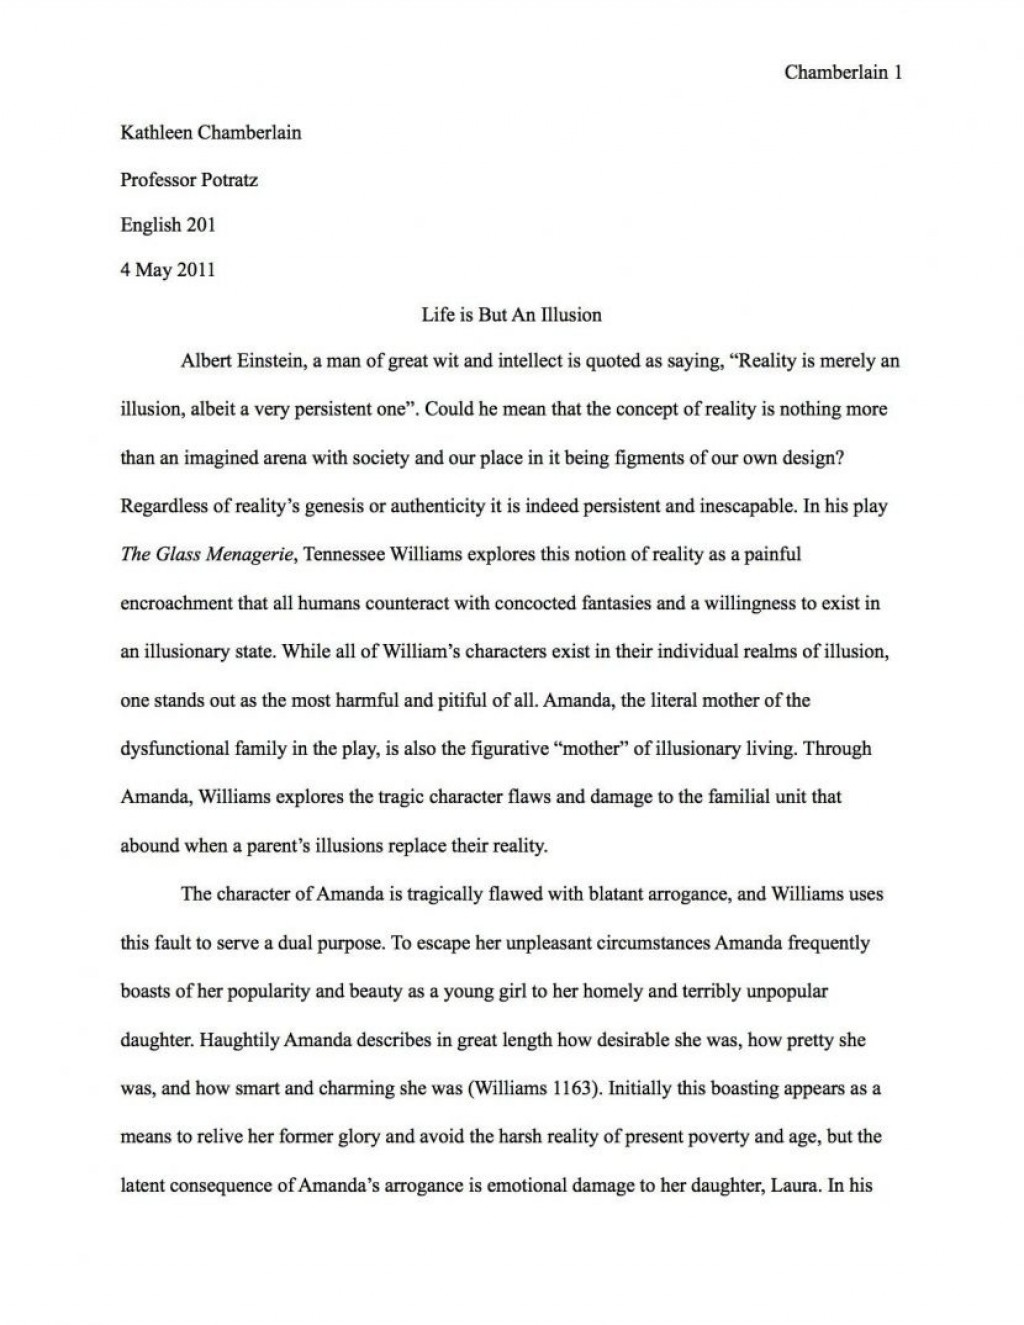 007 Introduction Paragraphle Apales And Forms How To Write An Interview Essay Sample Style General Writing Tips Intended For Pertaini Excellent Example Paper In Apa Format Large